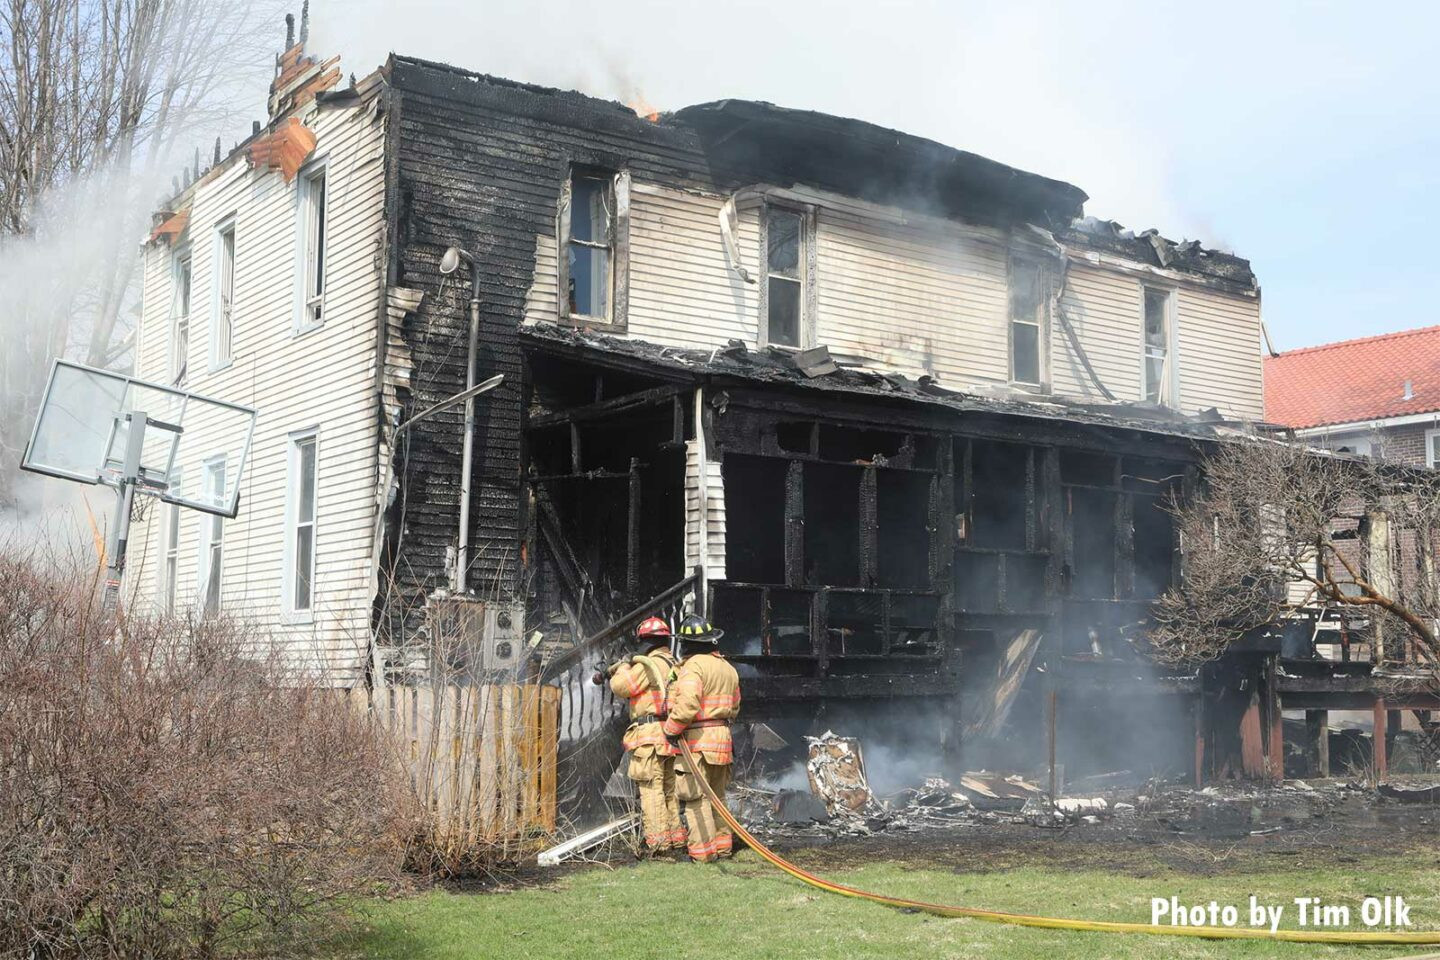 Firefighters responding to a two-alarm fire in Rockford, Illinois